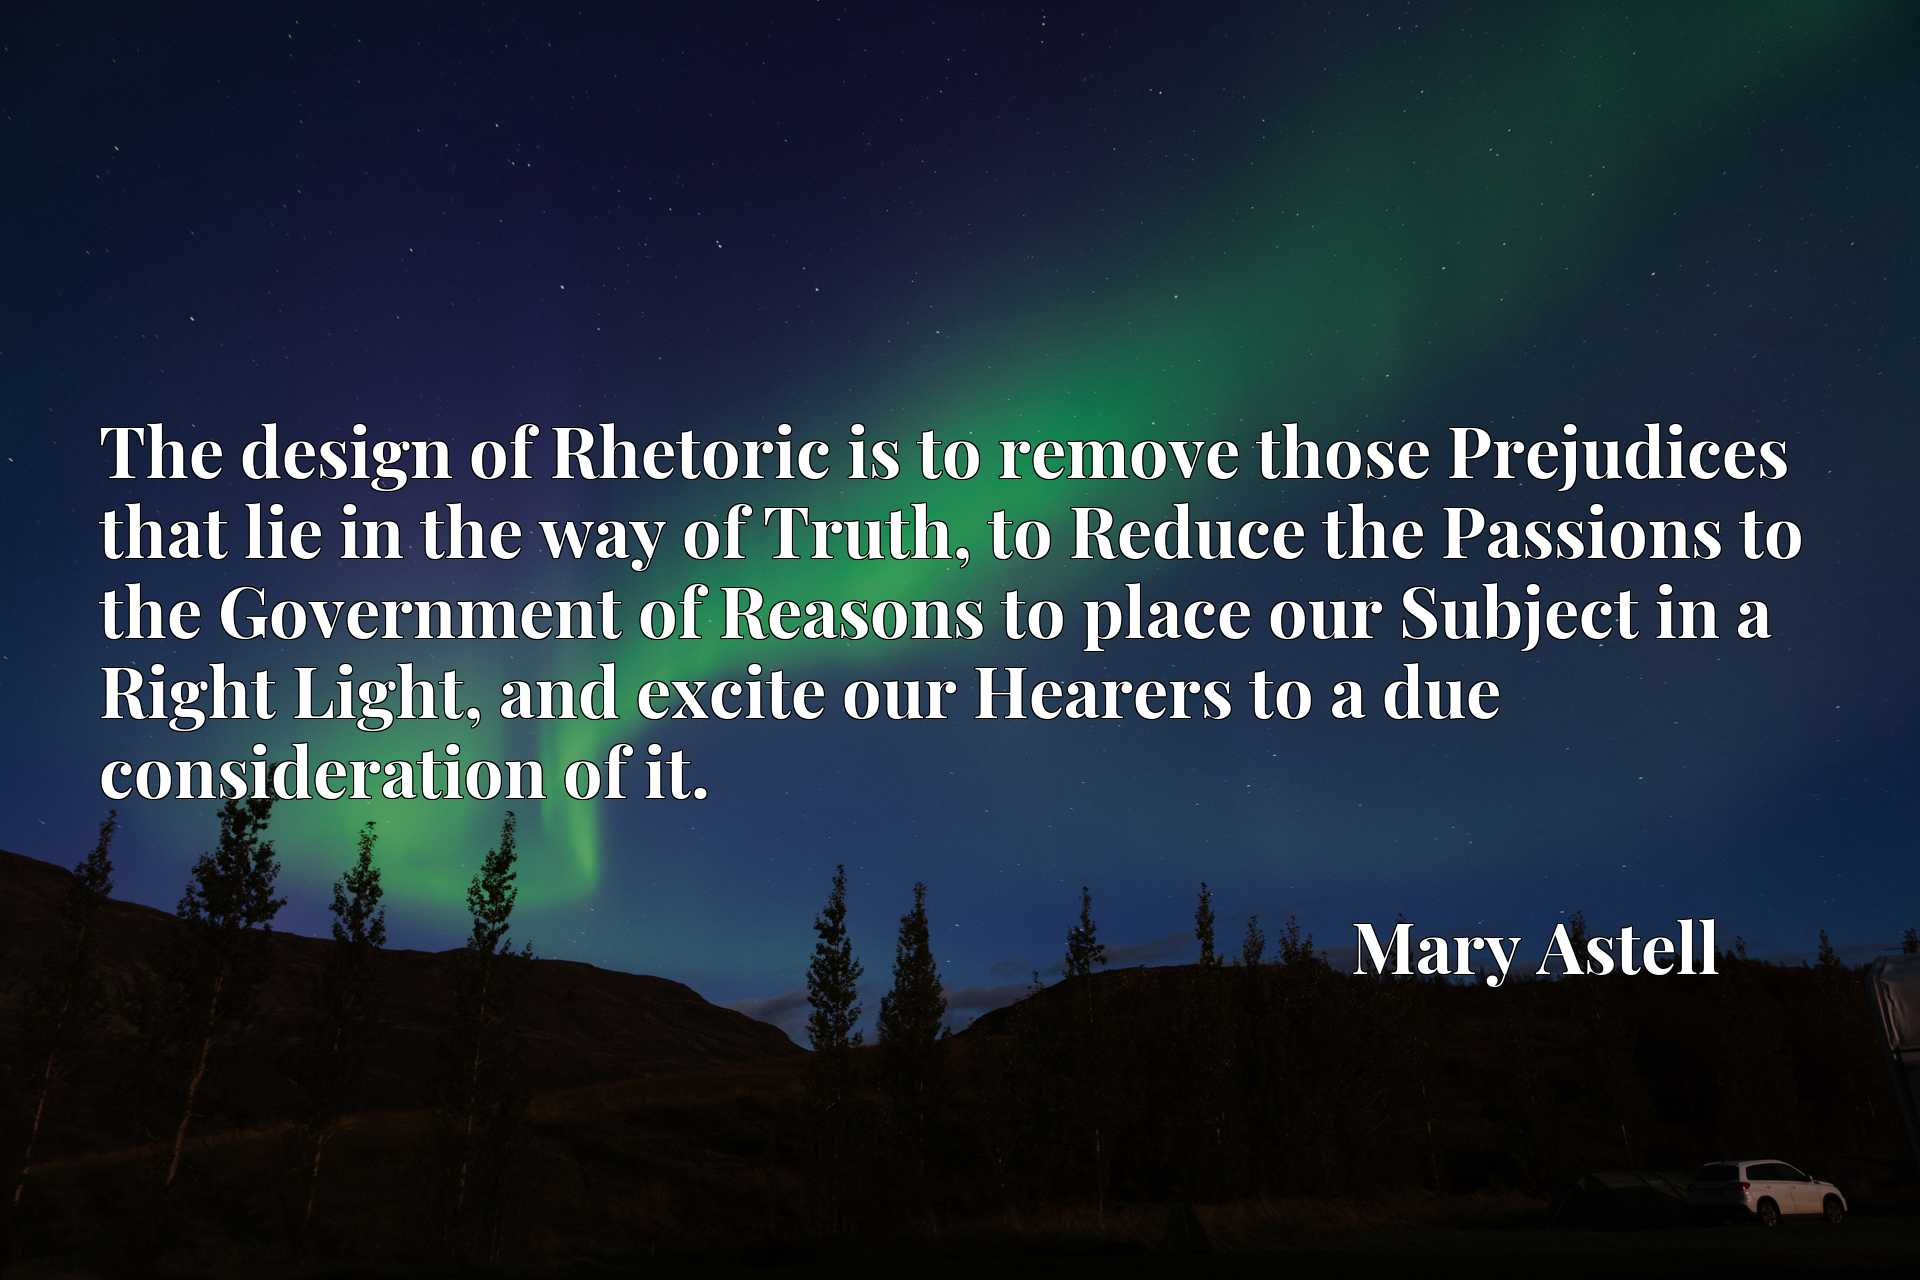 The design of Rhetoric is to remove those Prejudices that lie in the way of Truth, to Reduce the Passions to the Government of Reasons to place our Subject in a Right Light, and excite our Hearers to a due consideration of it.